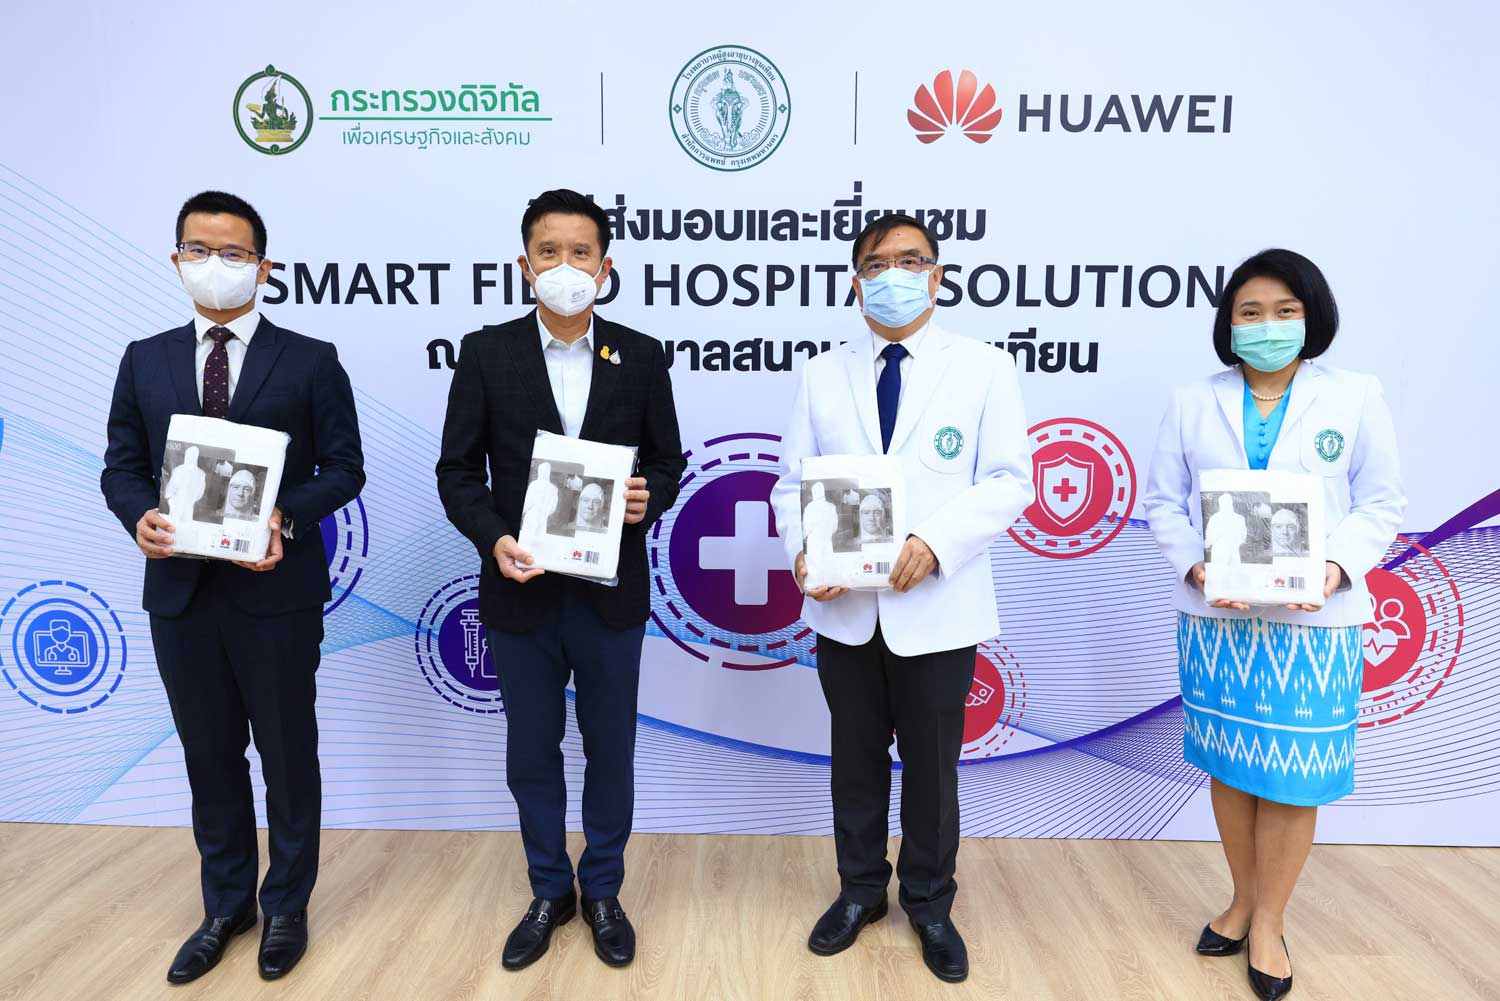 Photograph shows Mr. Chaiwut Thanakhamanusorn, Digital Economy and Society Minister (2nd left); 